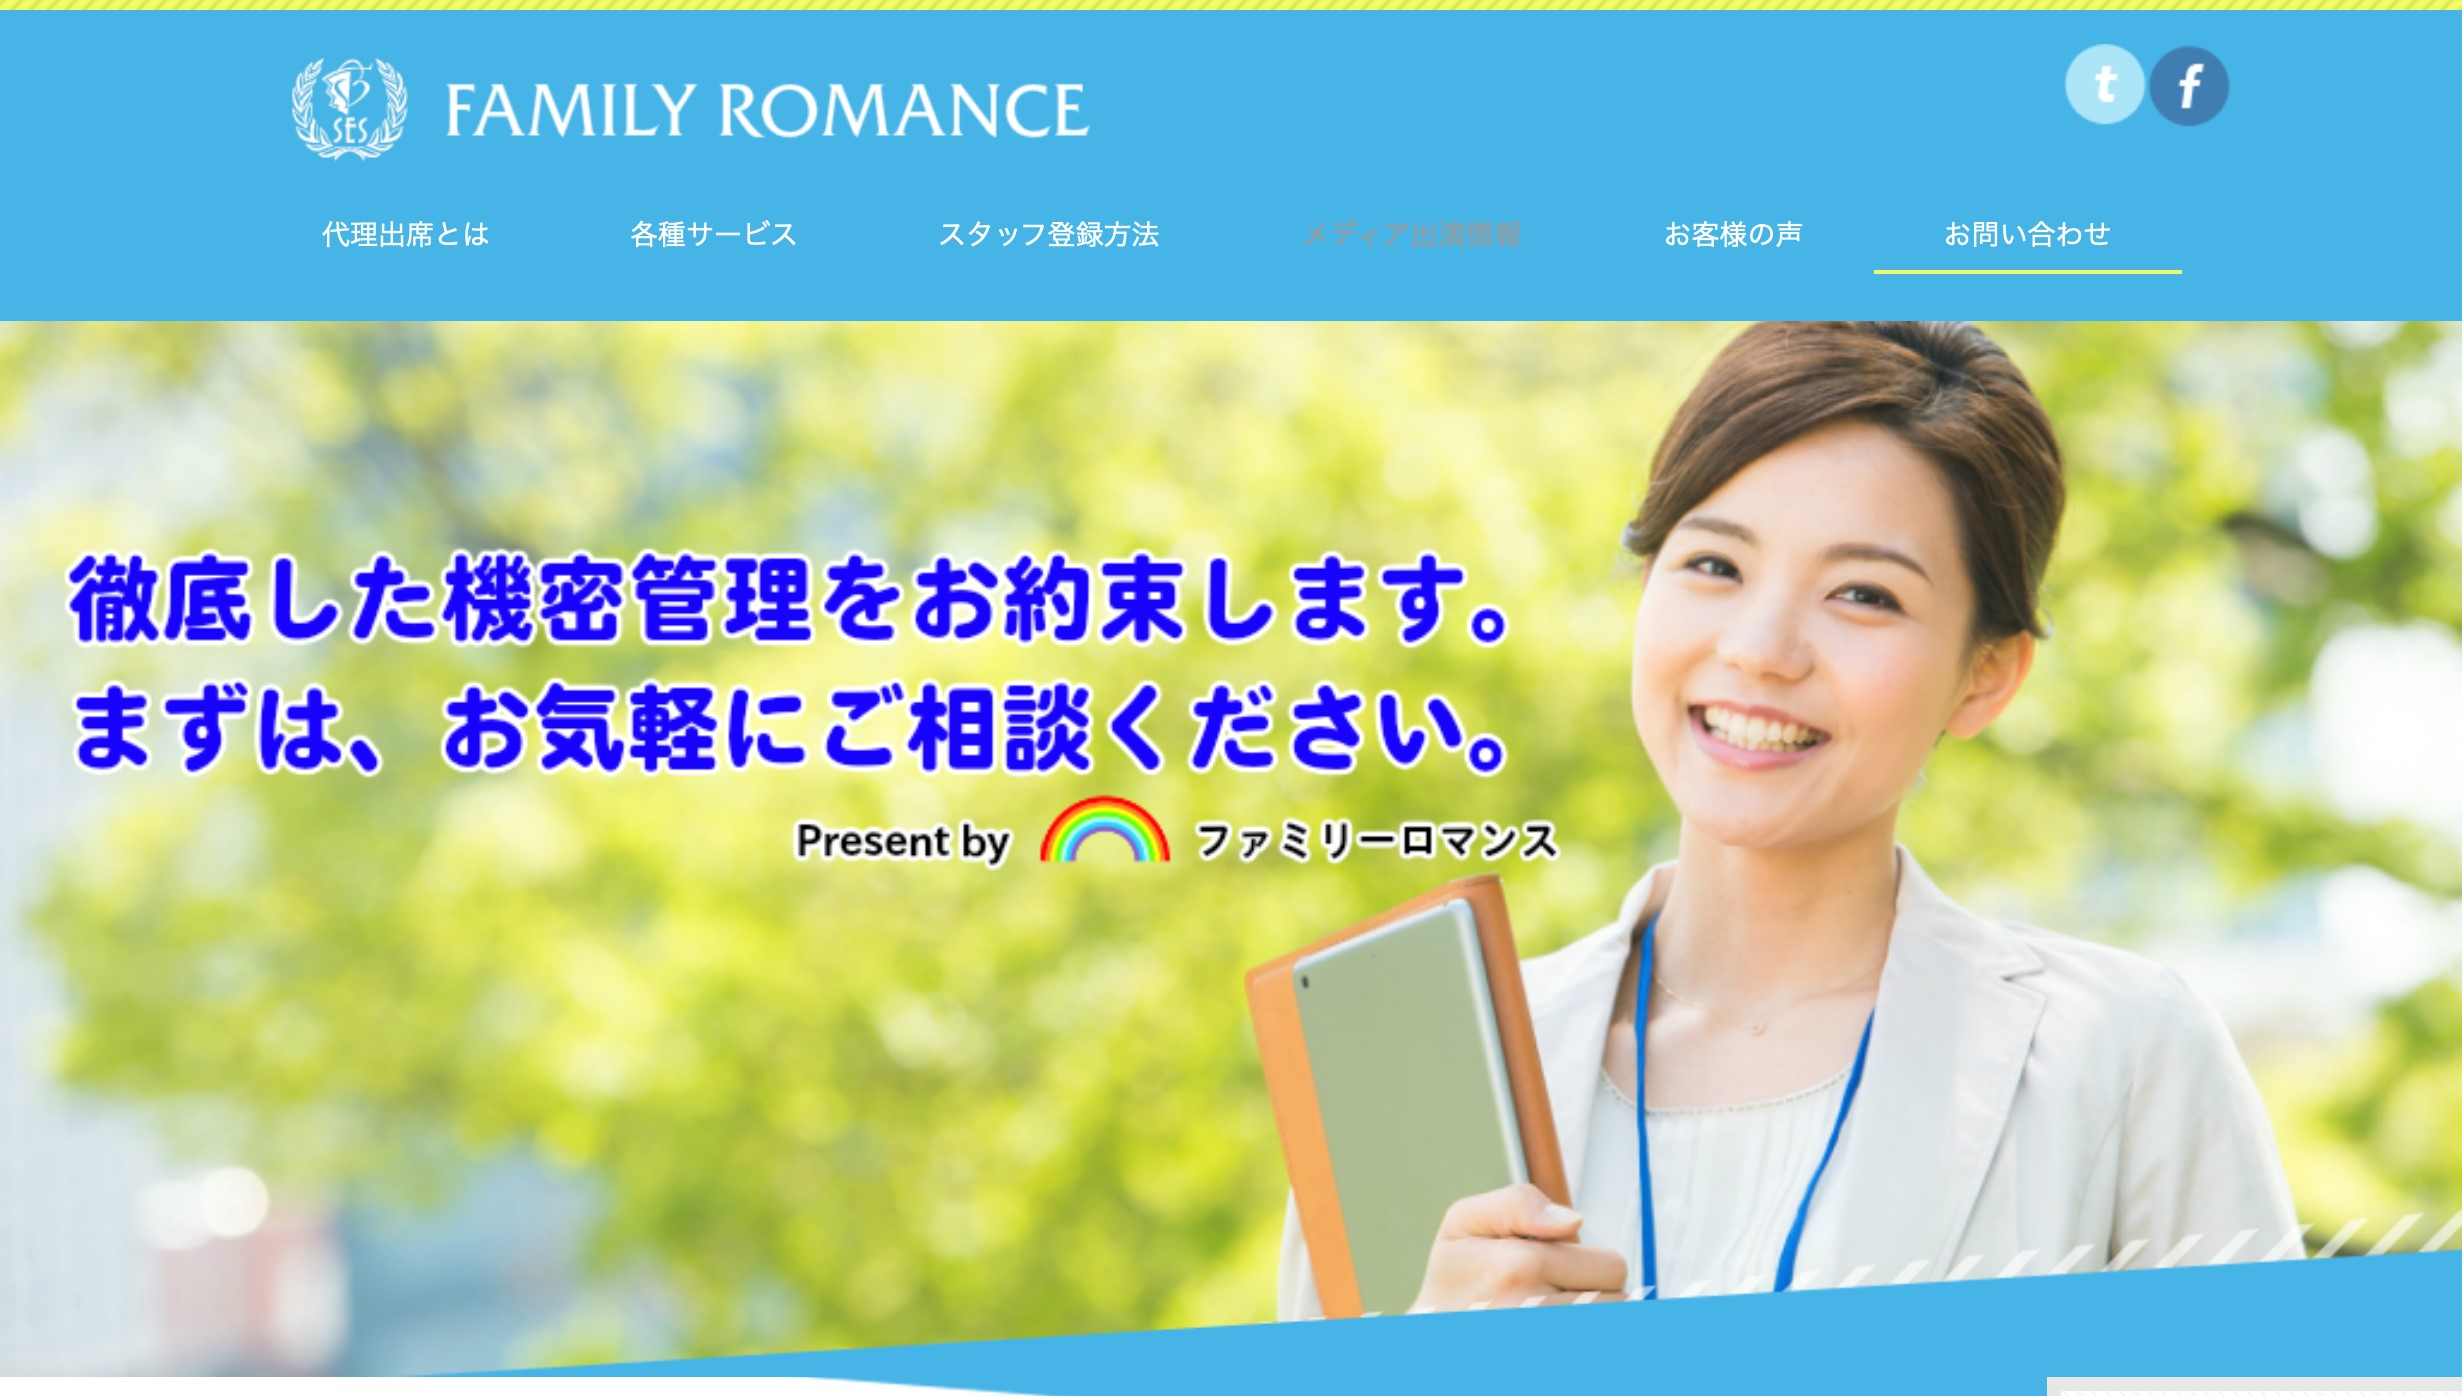 Figure 1: The website for Ishii's company, Family Romance. Accessed: October 28, 2019.